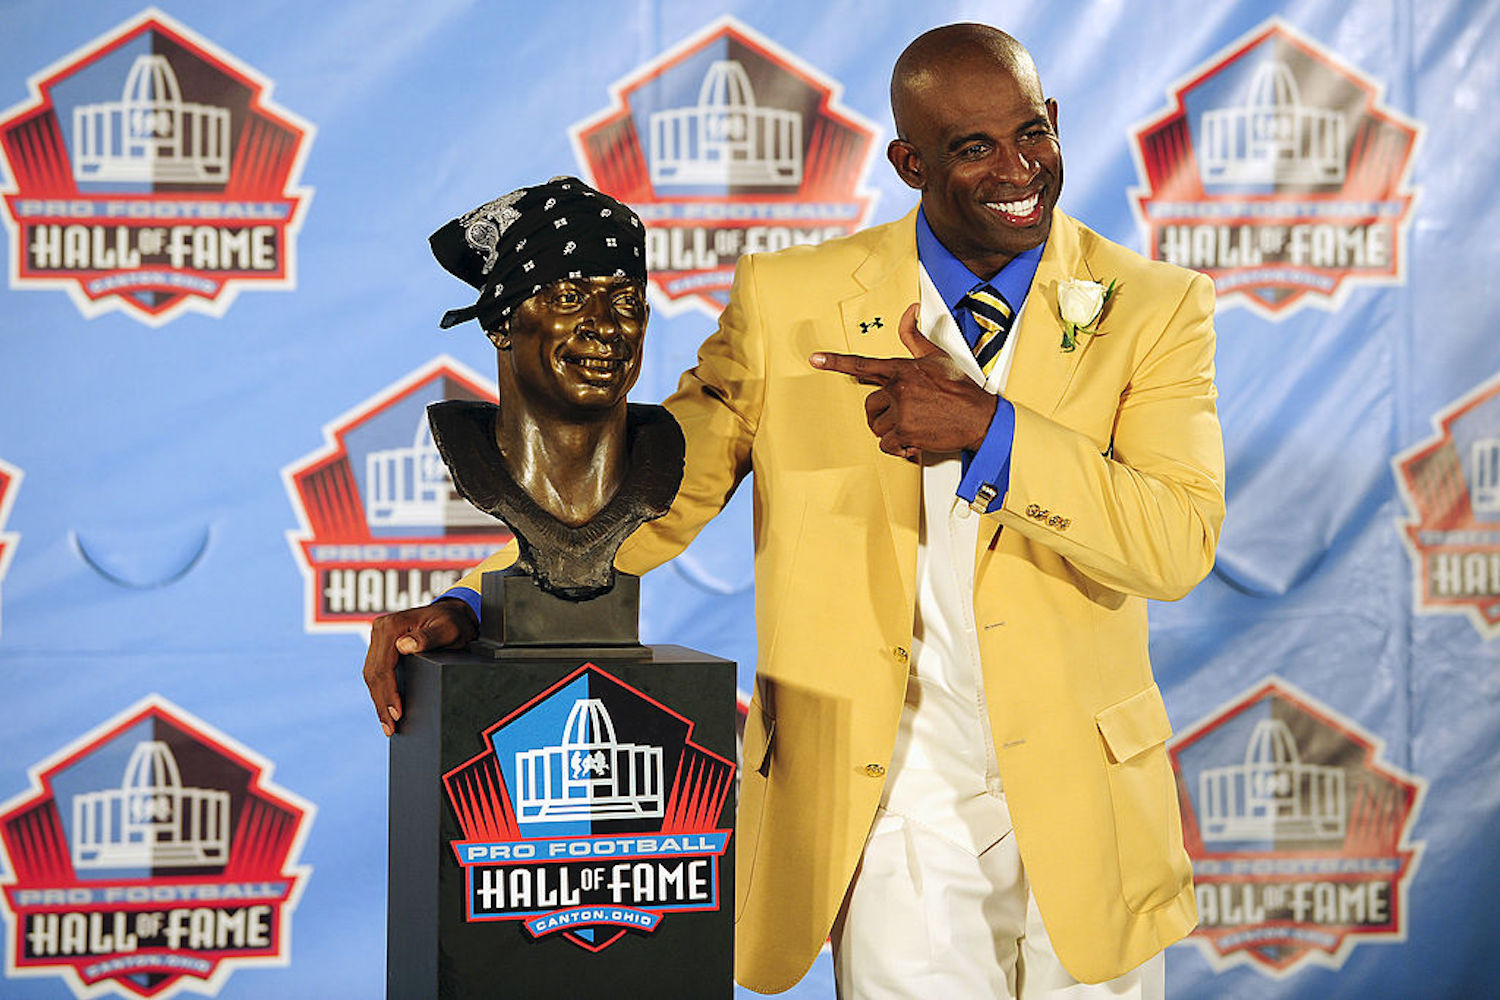 Deion Sanders was inducted into the Pro Football Hall of Fame in 2011, but he didn't receive the news from anyone involved in the NFL.